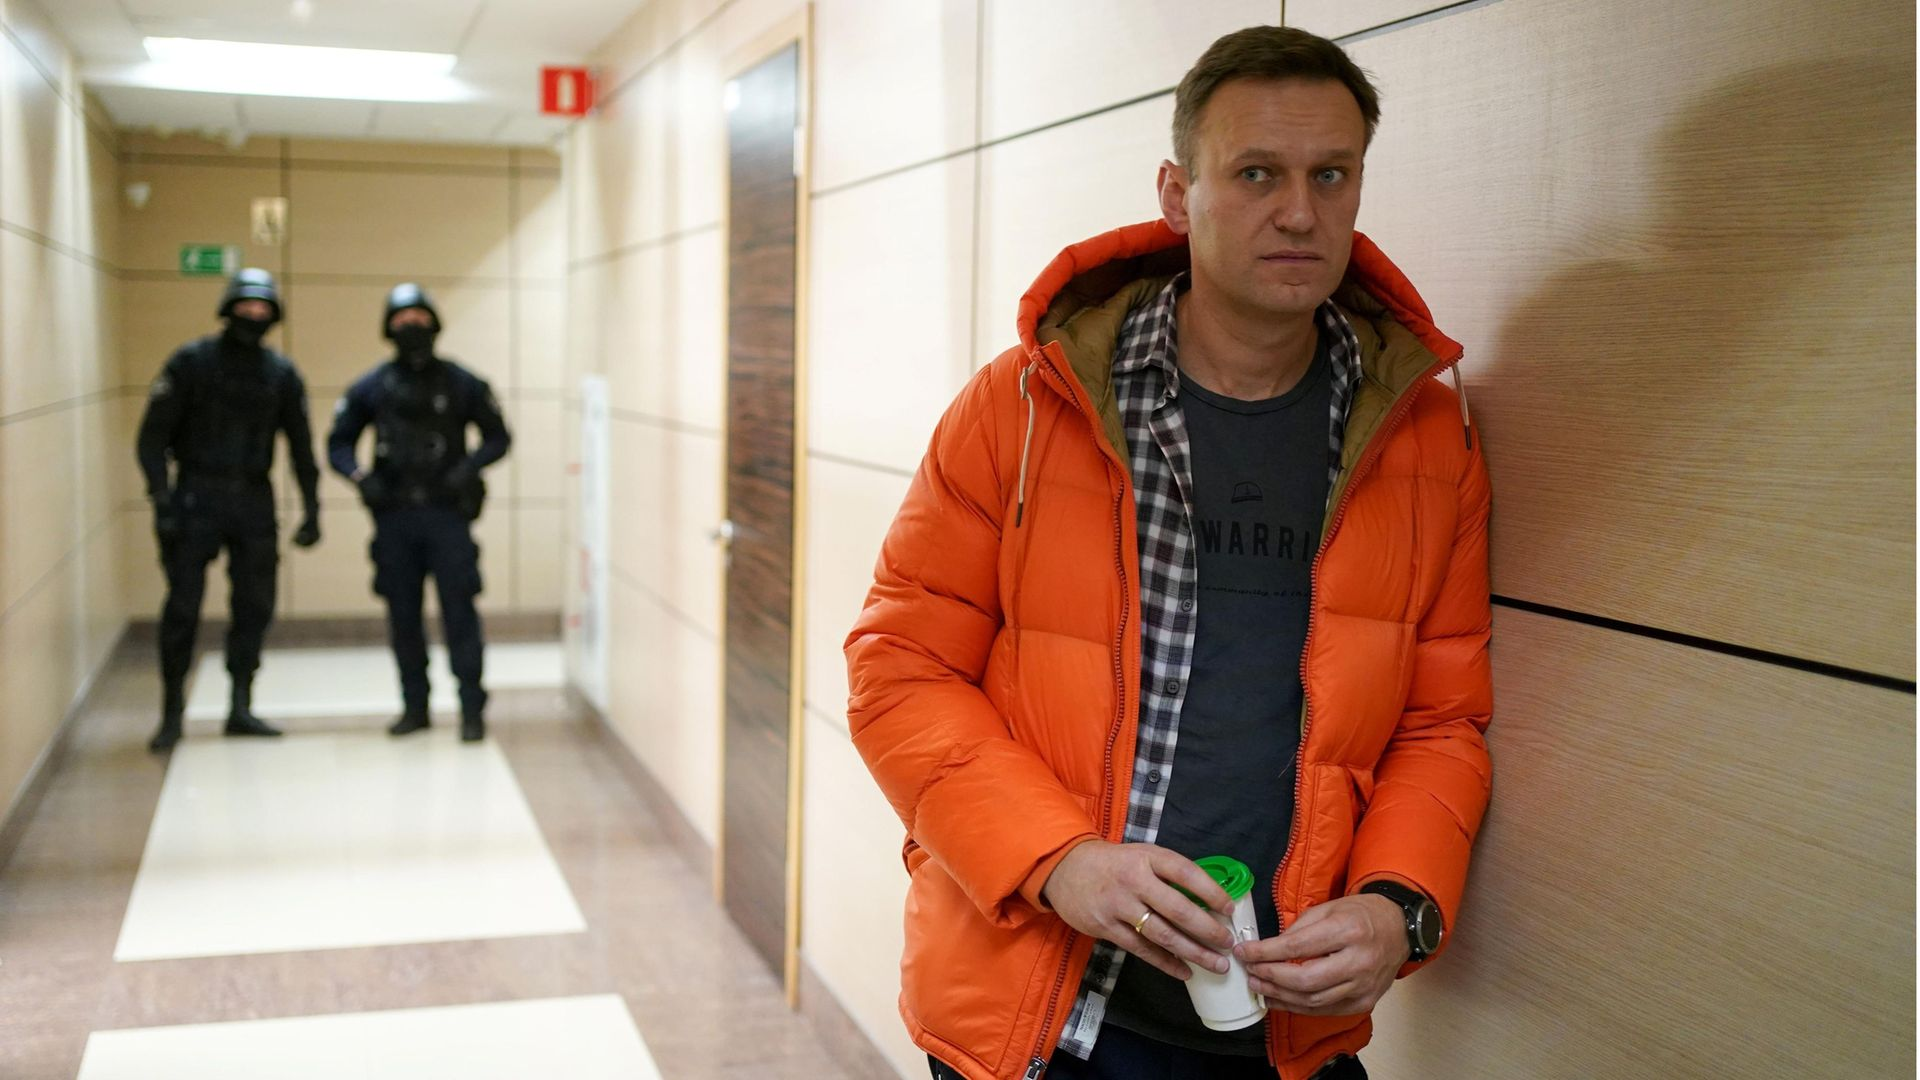 Russian opposition leader Alexei Navalny (question four) - Credit: AFP via Getty Images